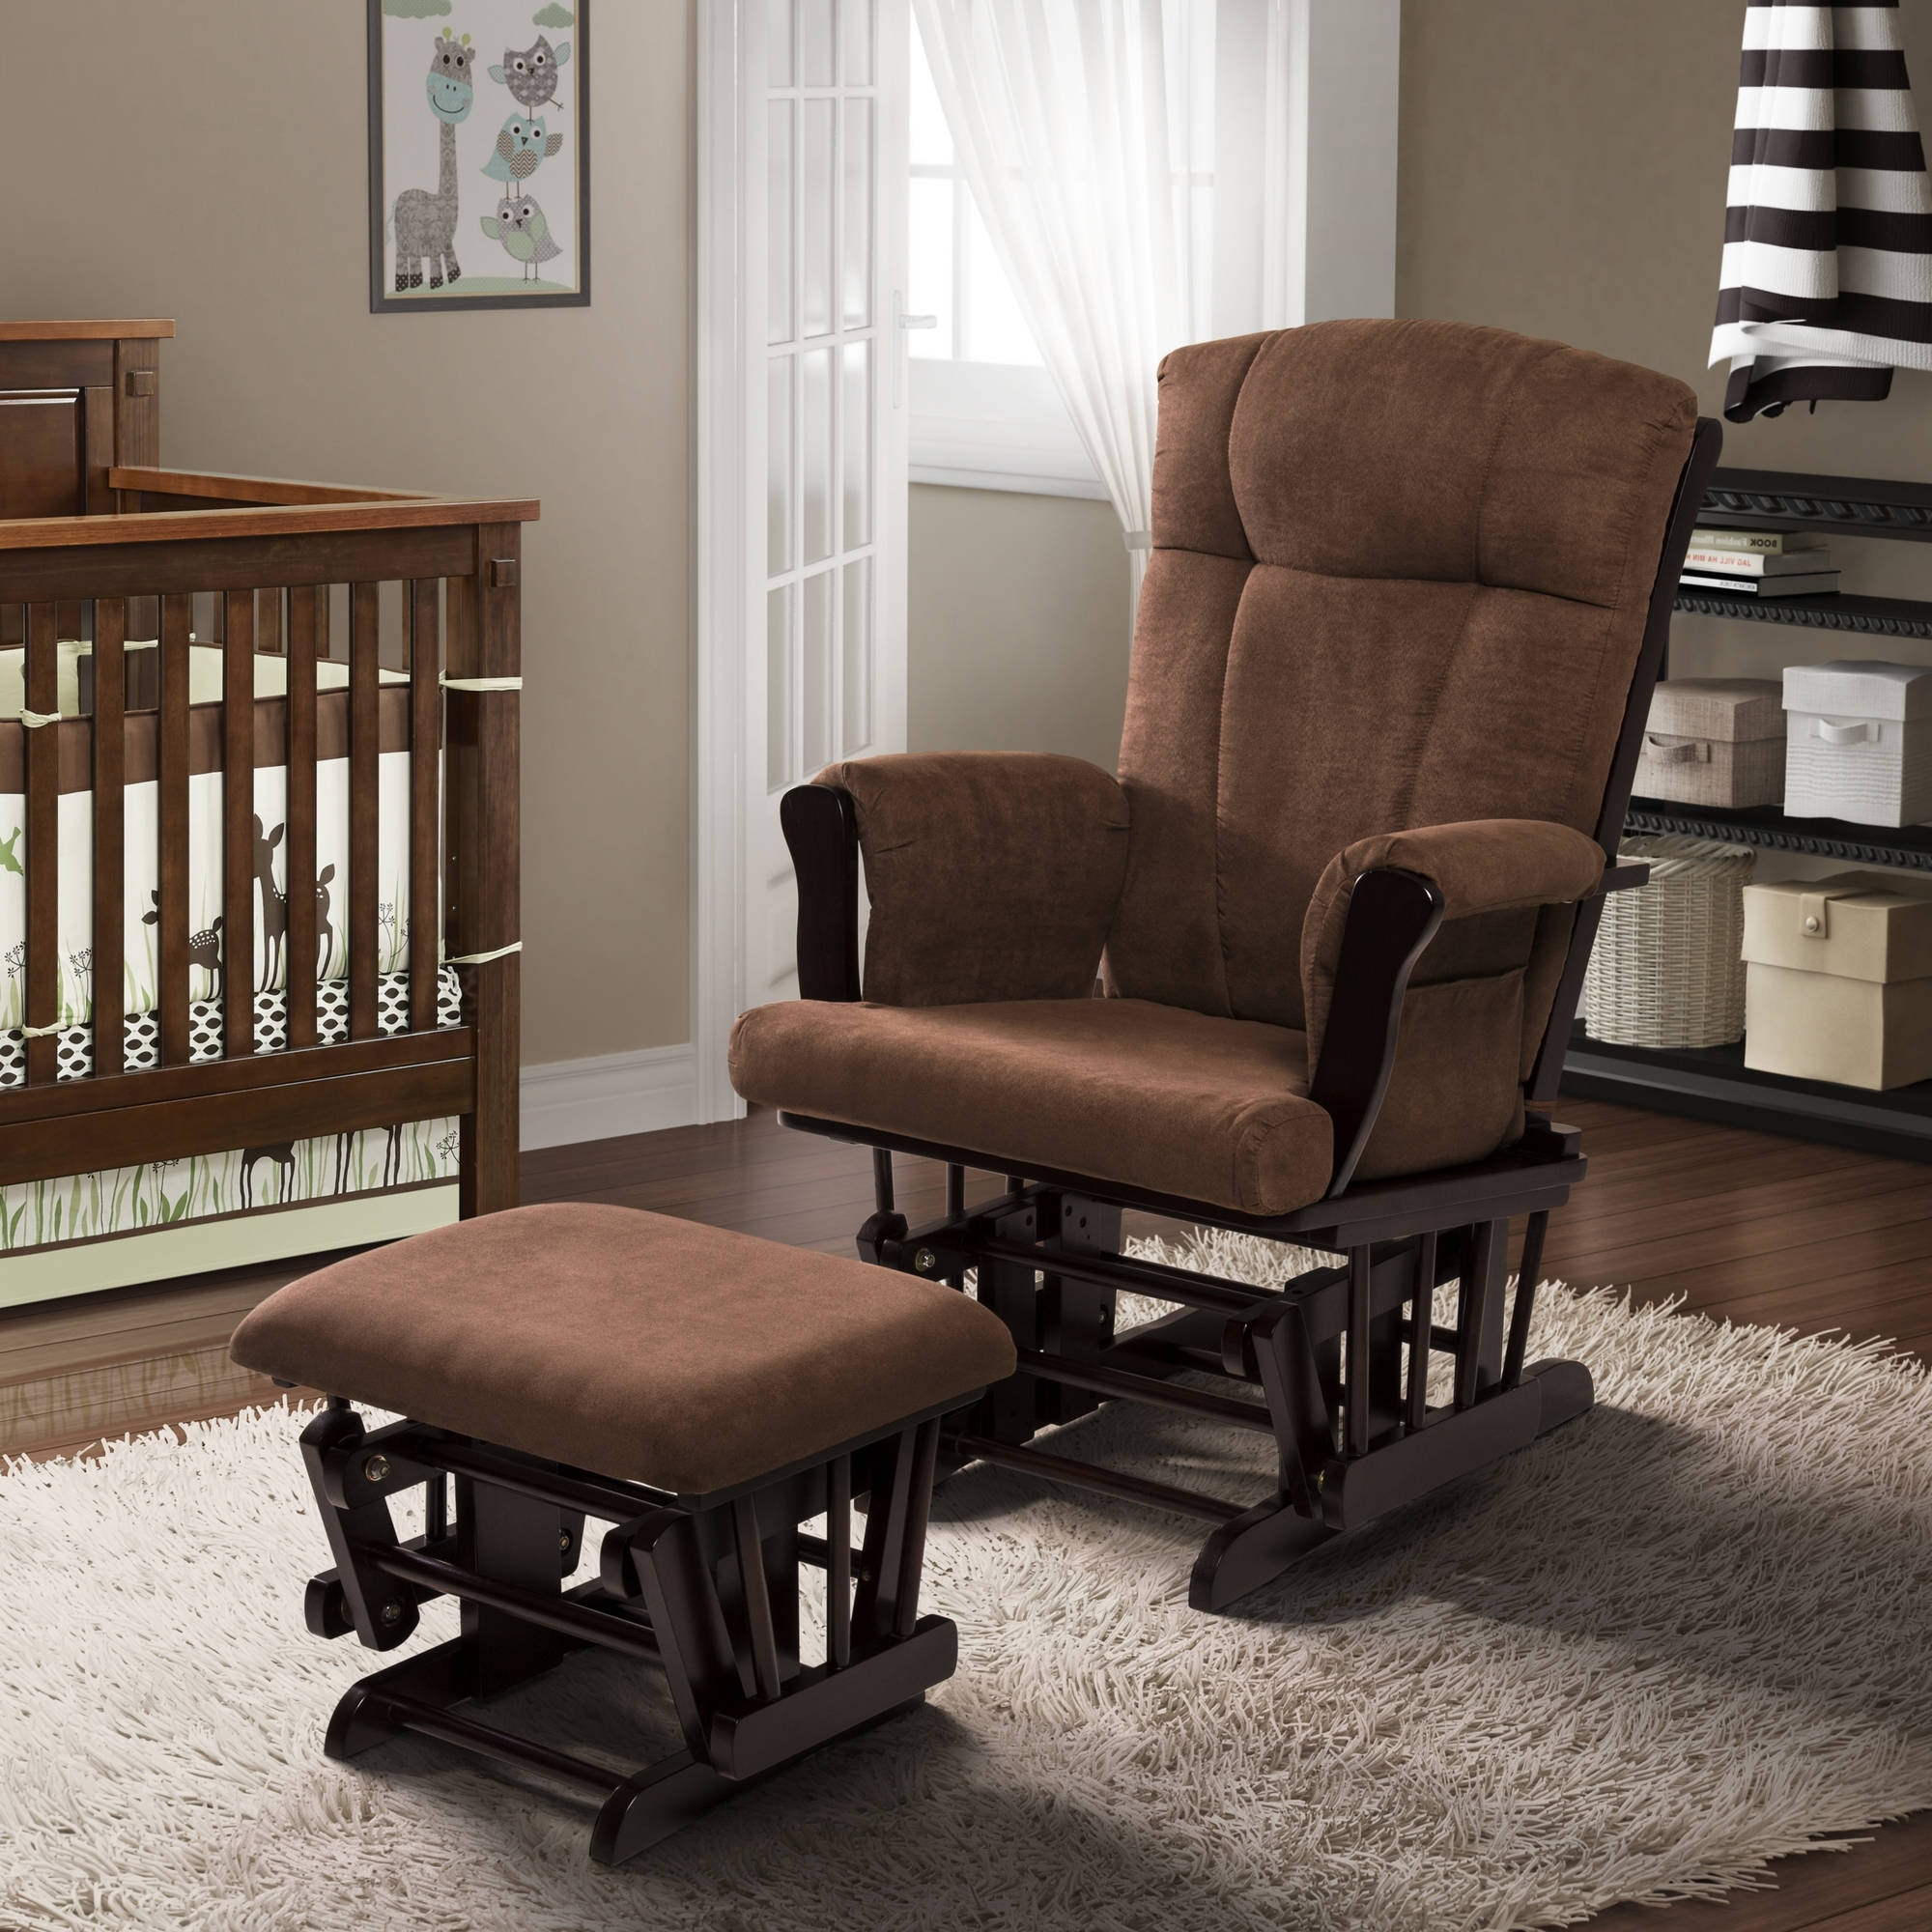 Preferred Rocking Chairs With Ottoman With Regard To Baby Relax Glider Rocker And Ottoman Espresso With Chocolate (View 18 of 20)